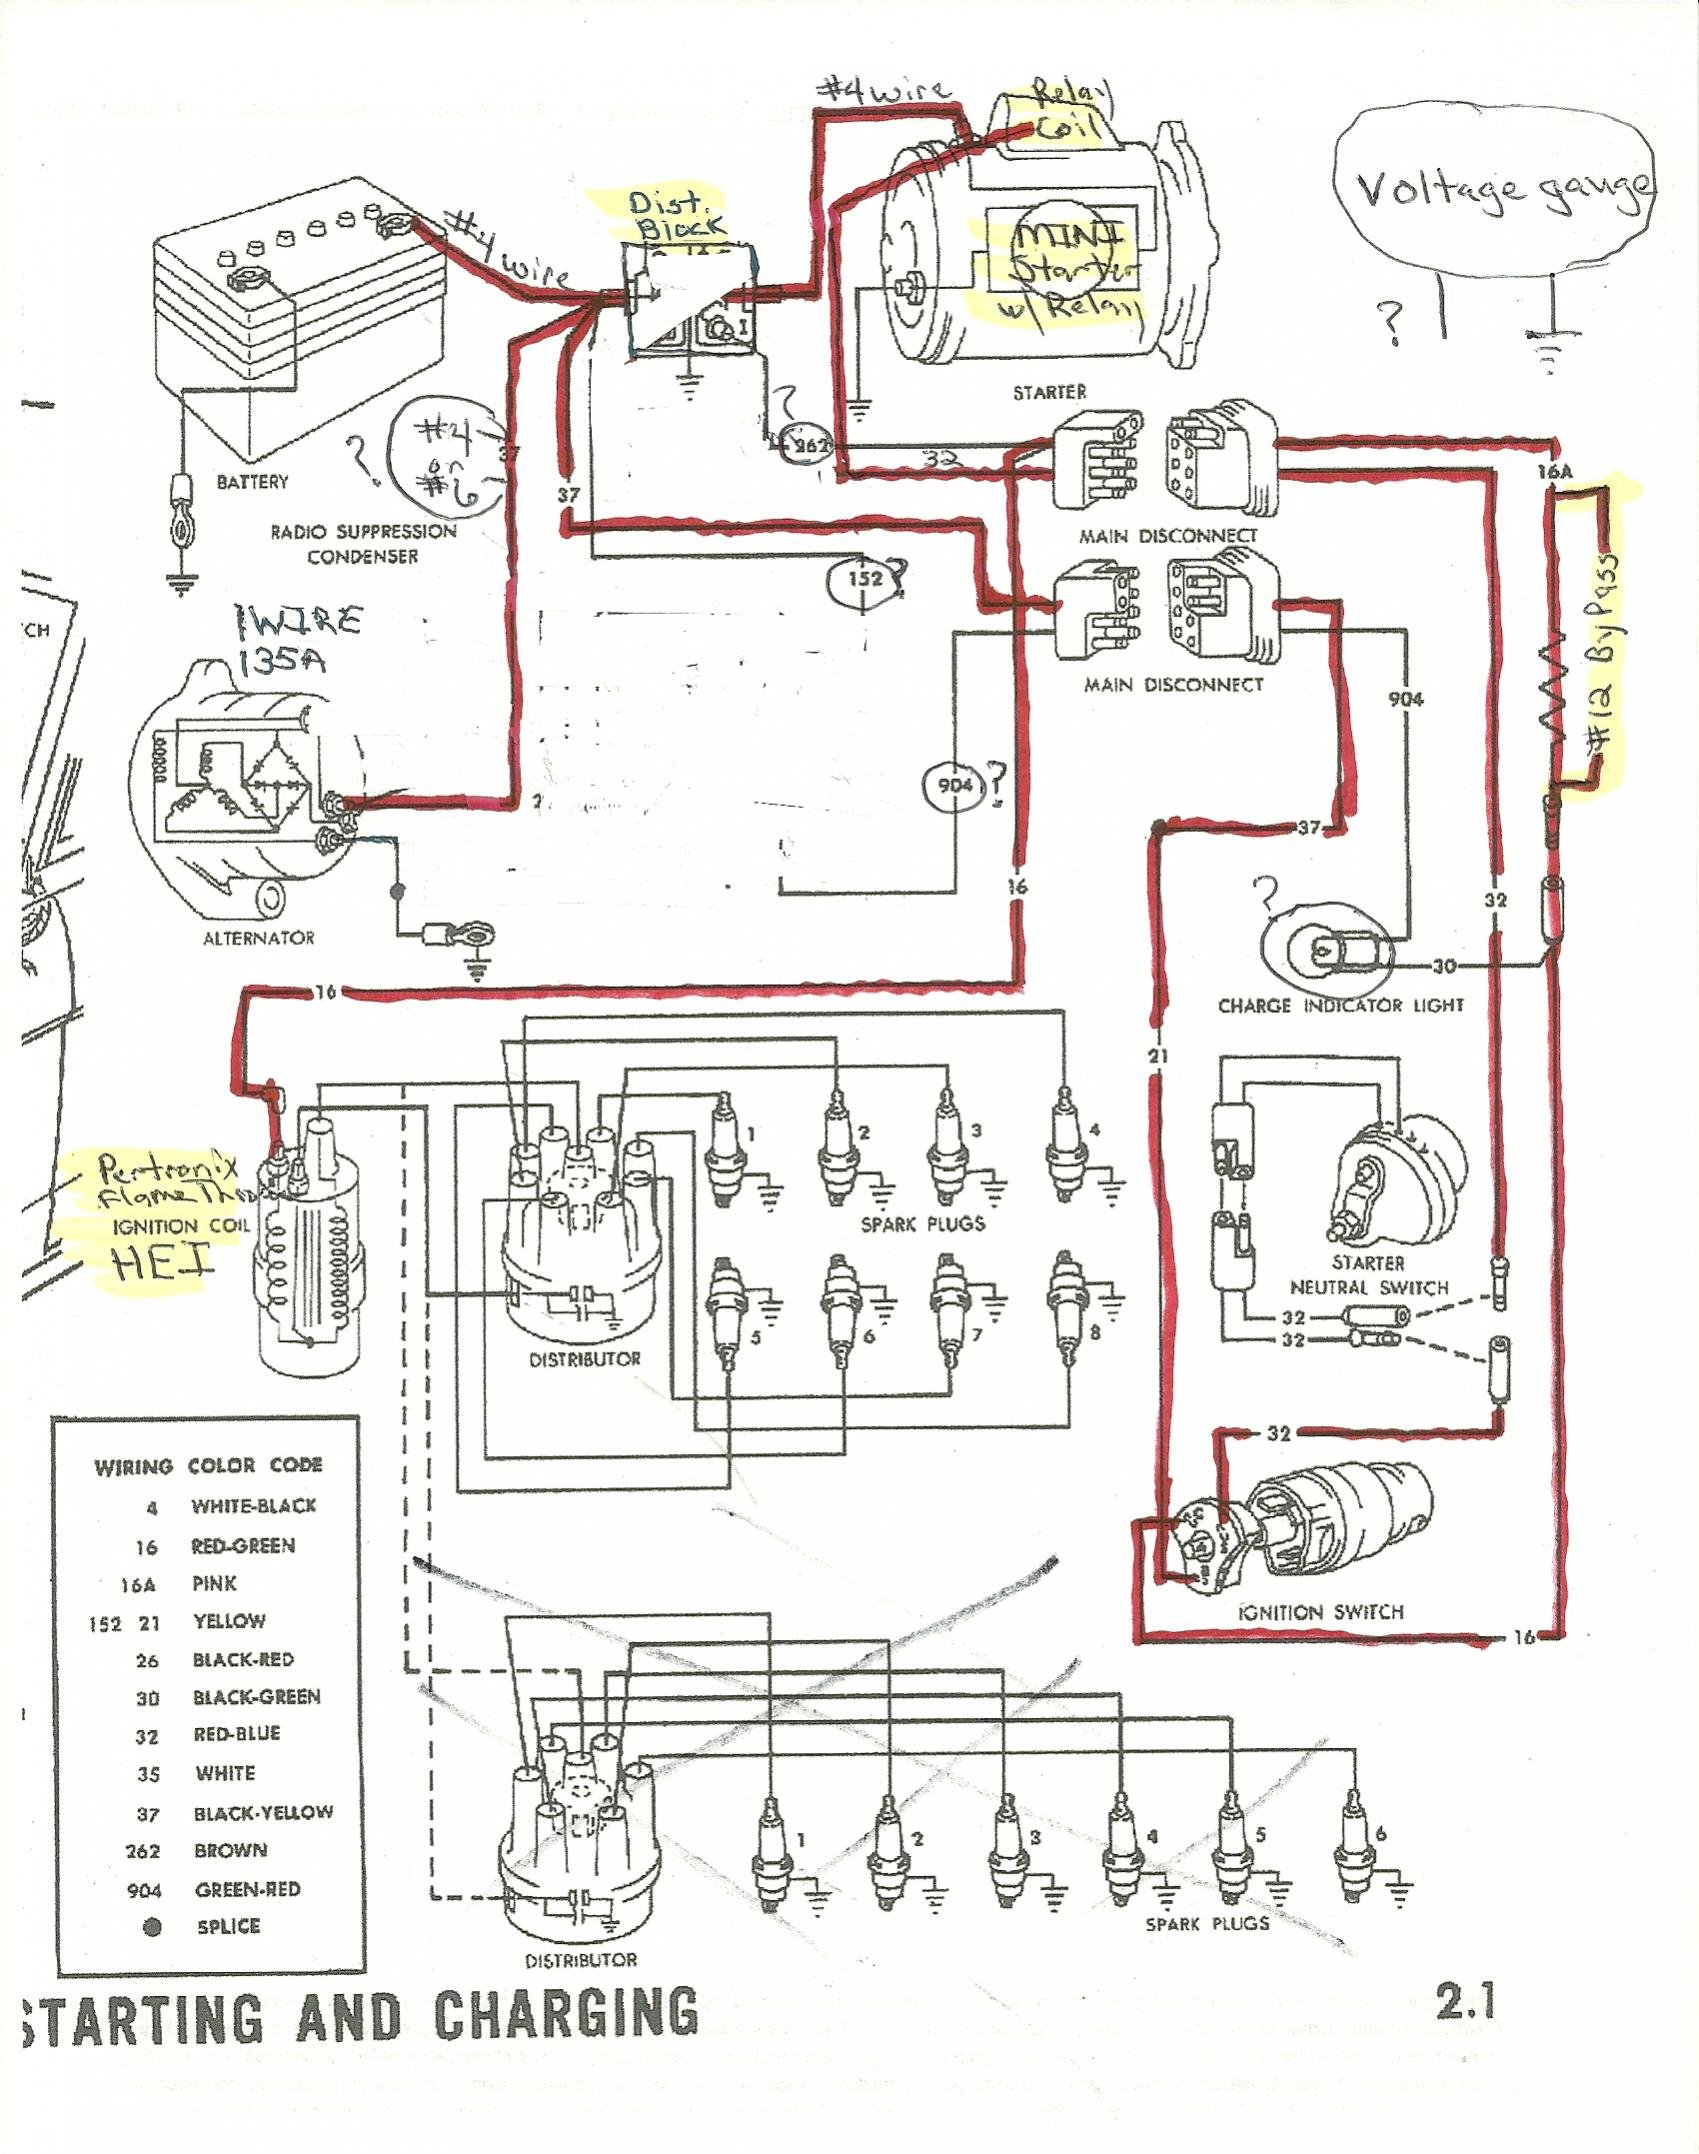 1969 gto starter wiring download wiring diagrams u2022 rh osomeweb com